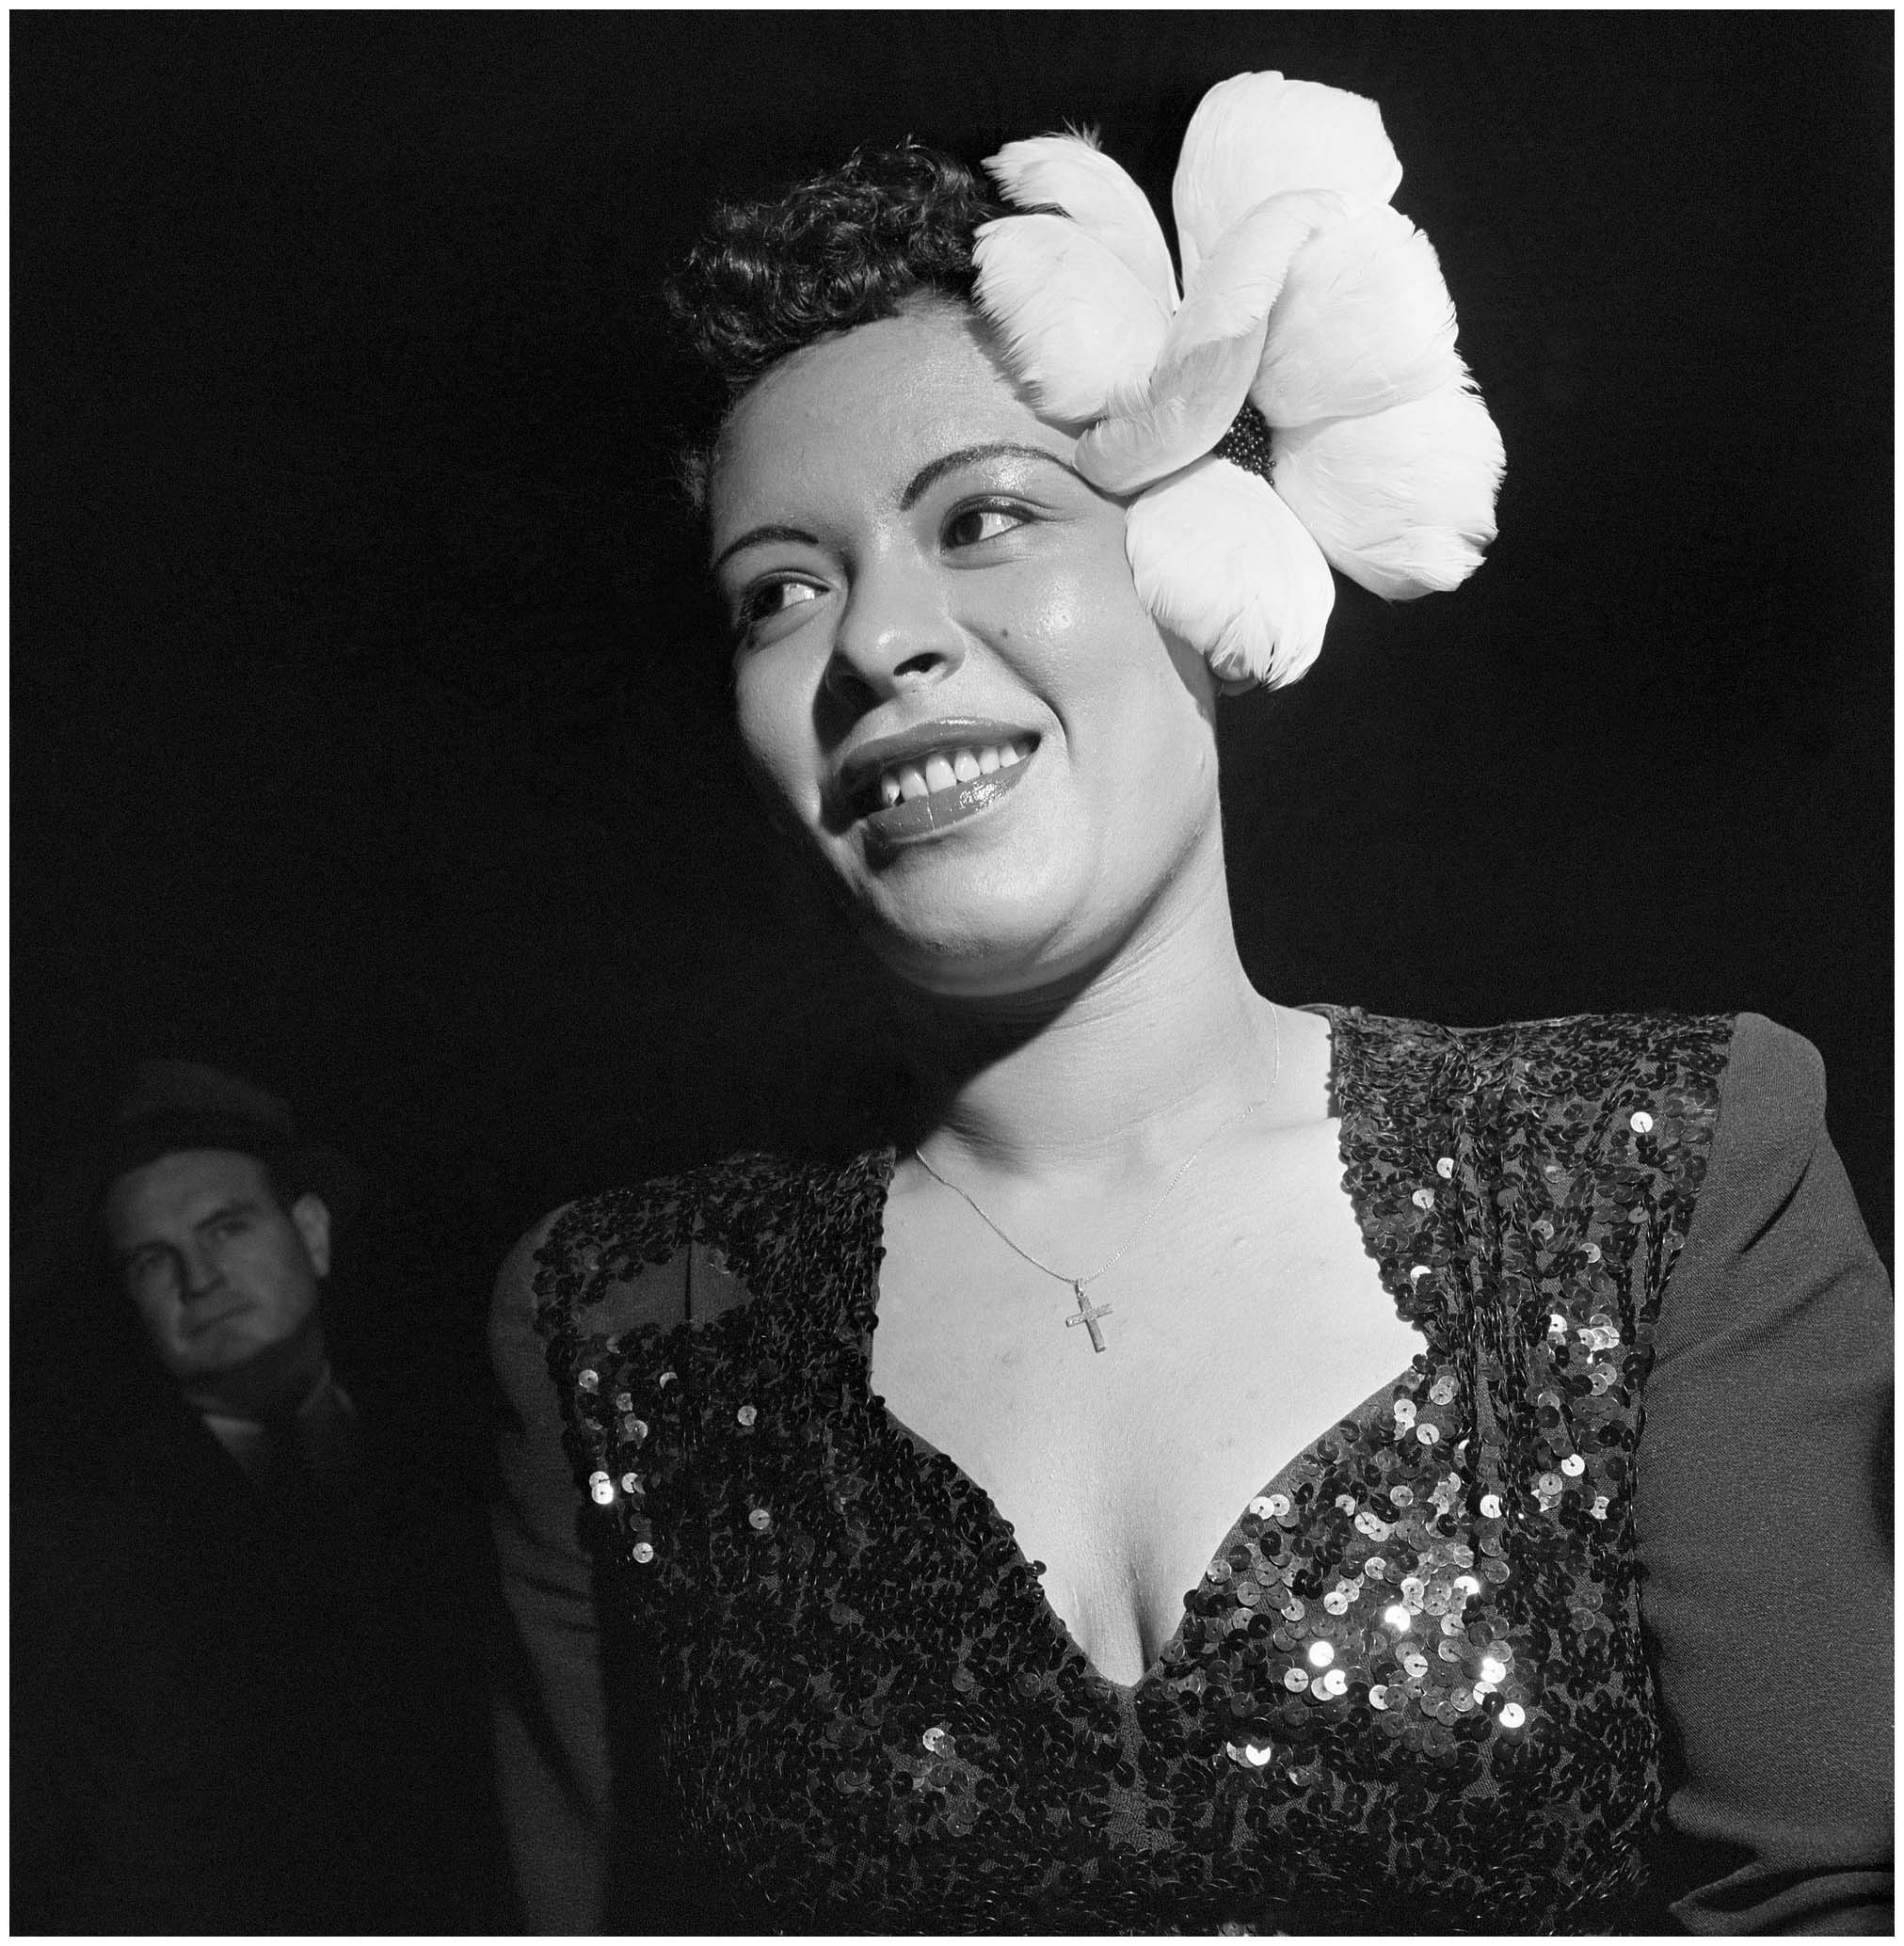 Billie Holiday Billie Holiday Wears A Large White Flower In Her Hair